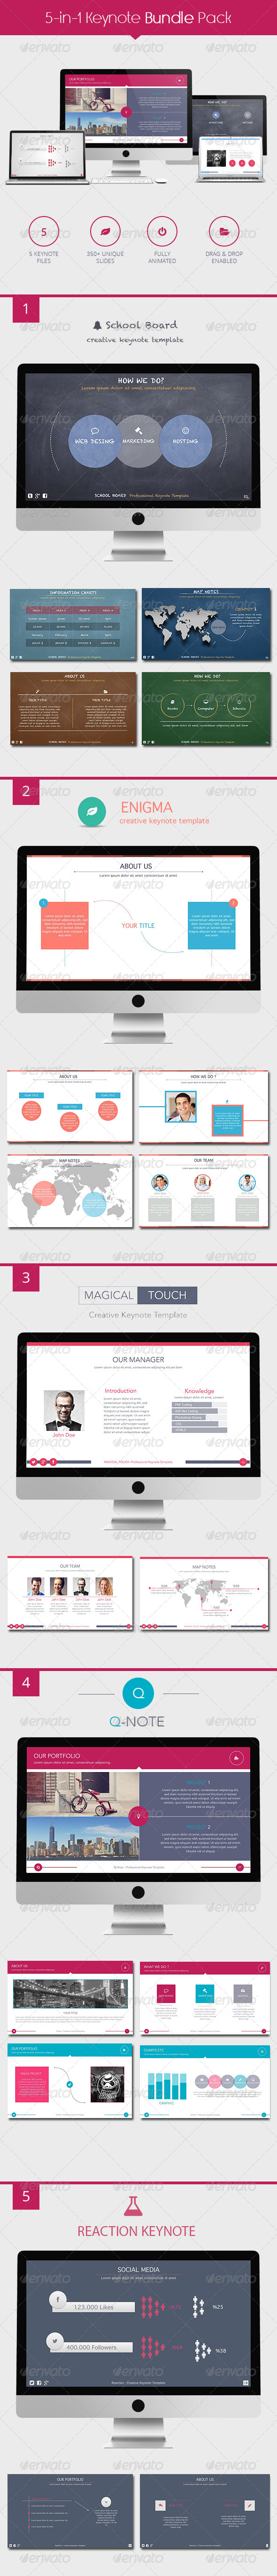 GraphicRiver 5-in-1 Keynote Bundle 7731068